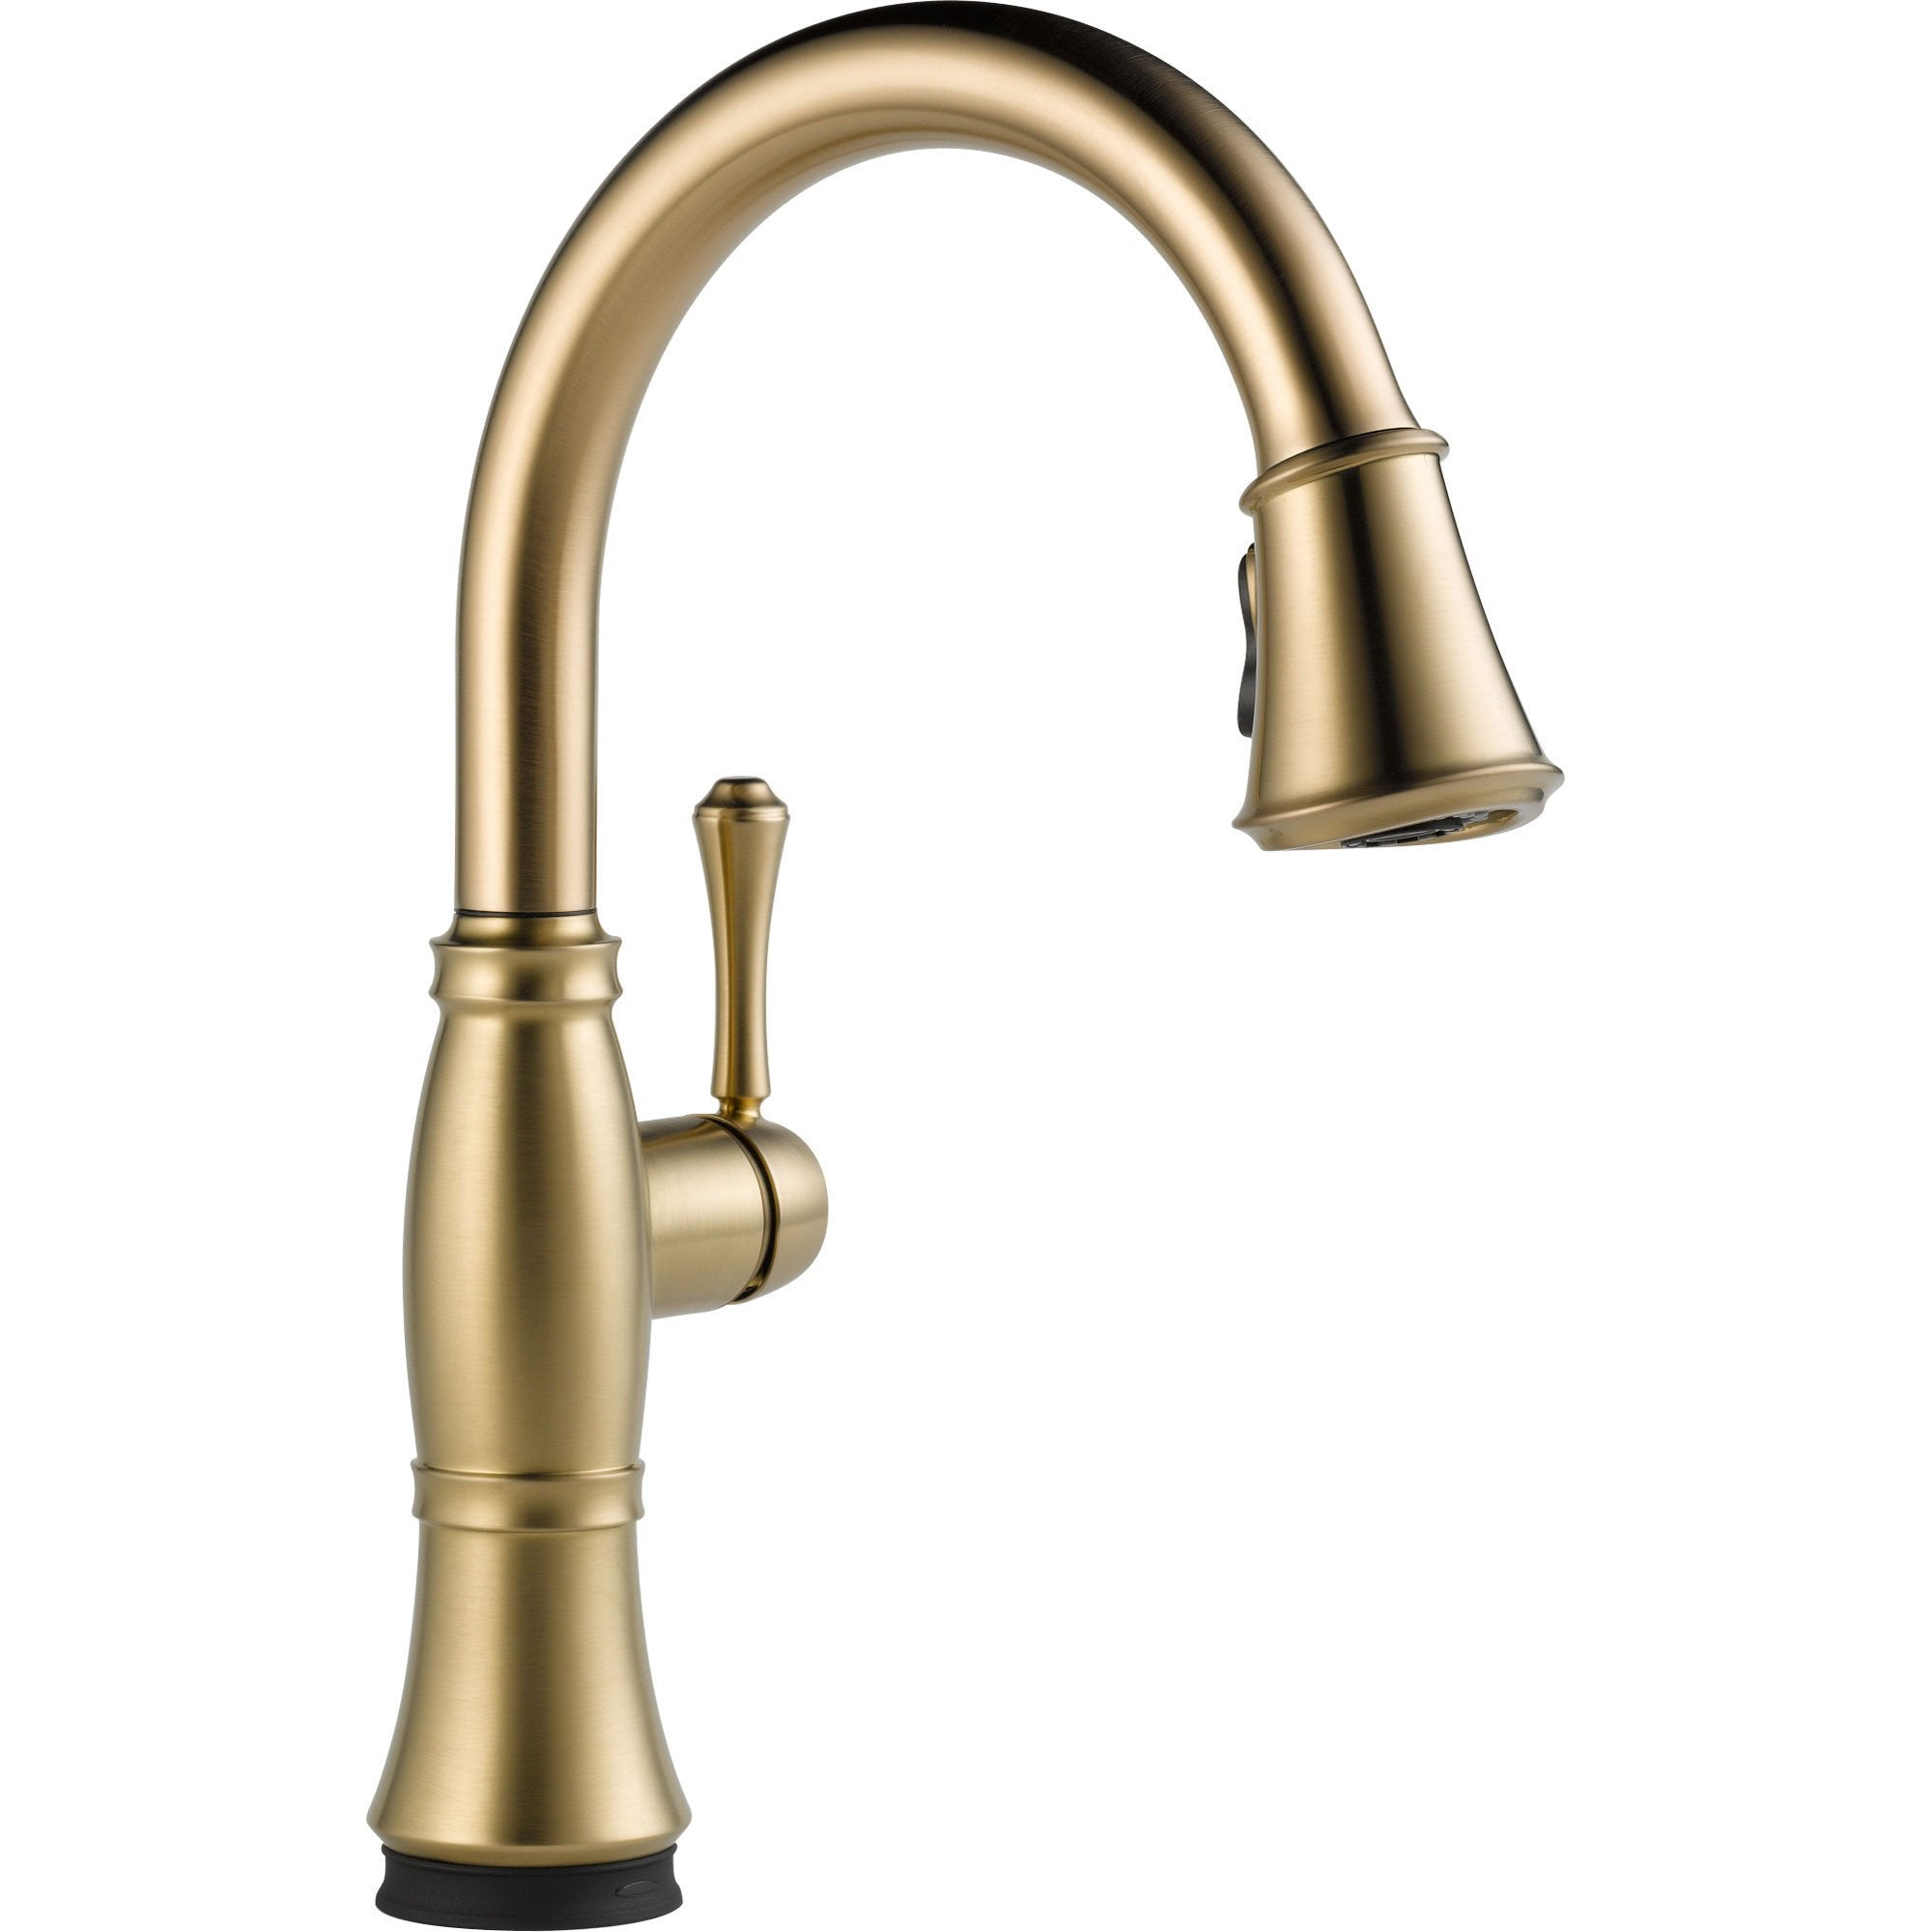 Delta Cassidy Touch2O Champagne Bronze Pull-Down Sprayer Kitchen Faucet 579594